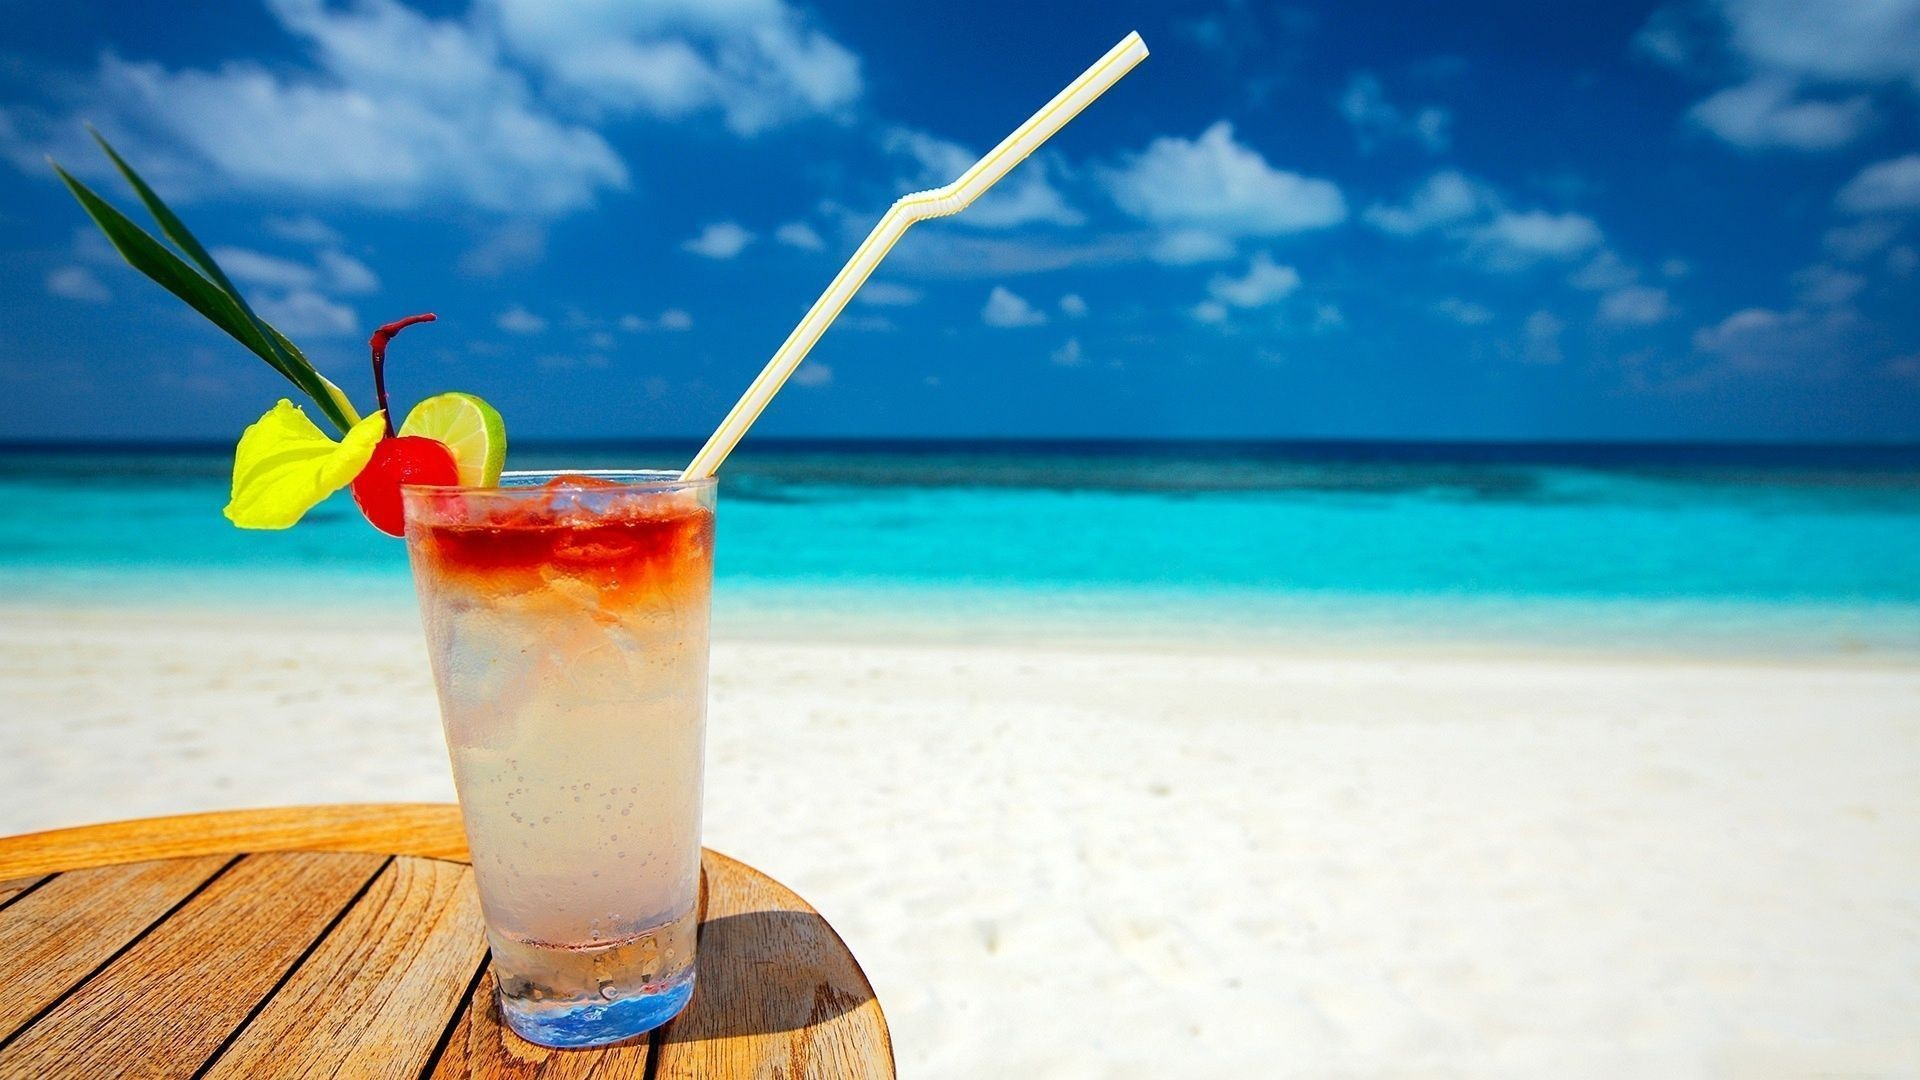 1920x1080 Beautiful Summer Cocktail on the beach HD Wallpaper